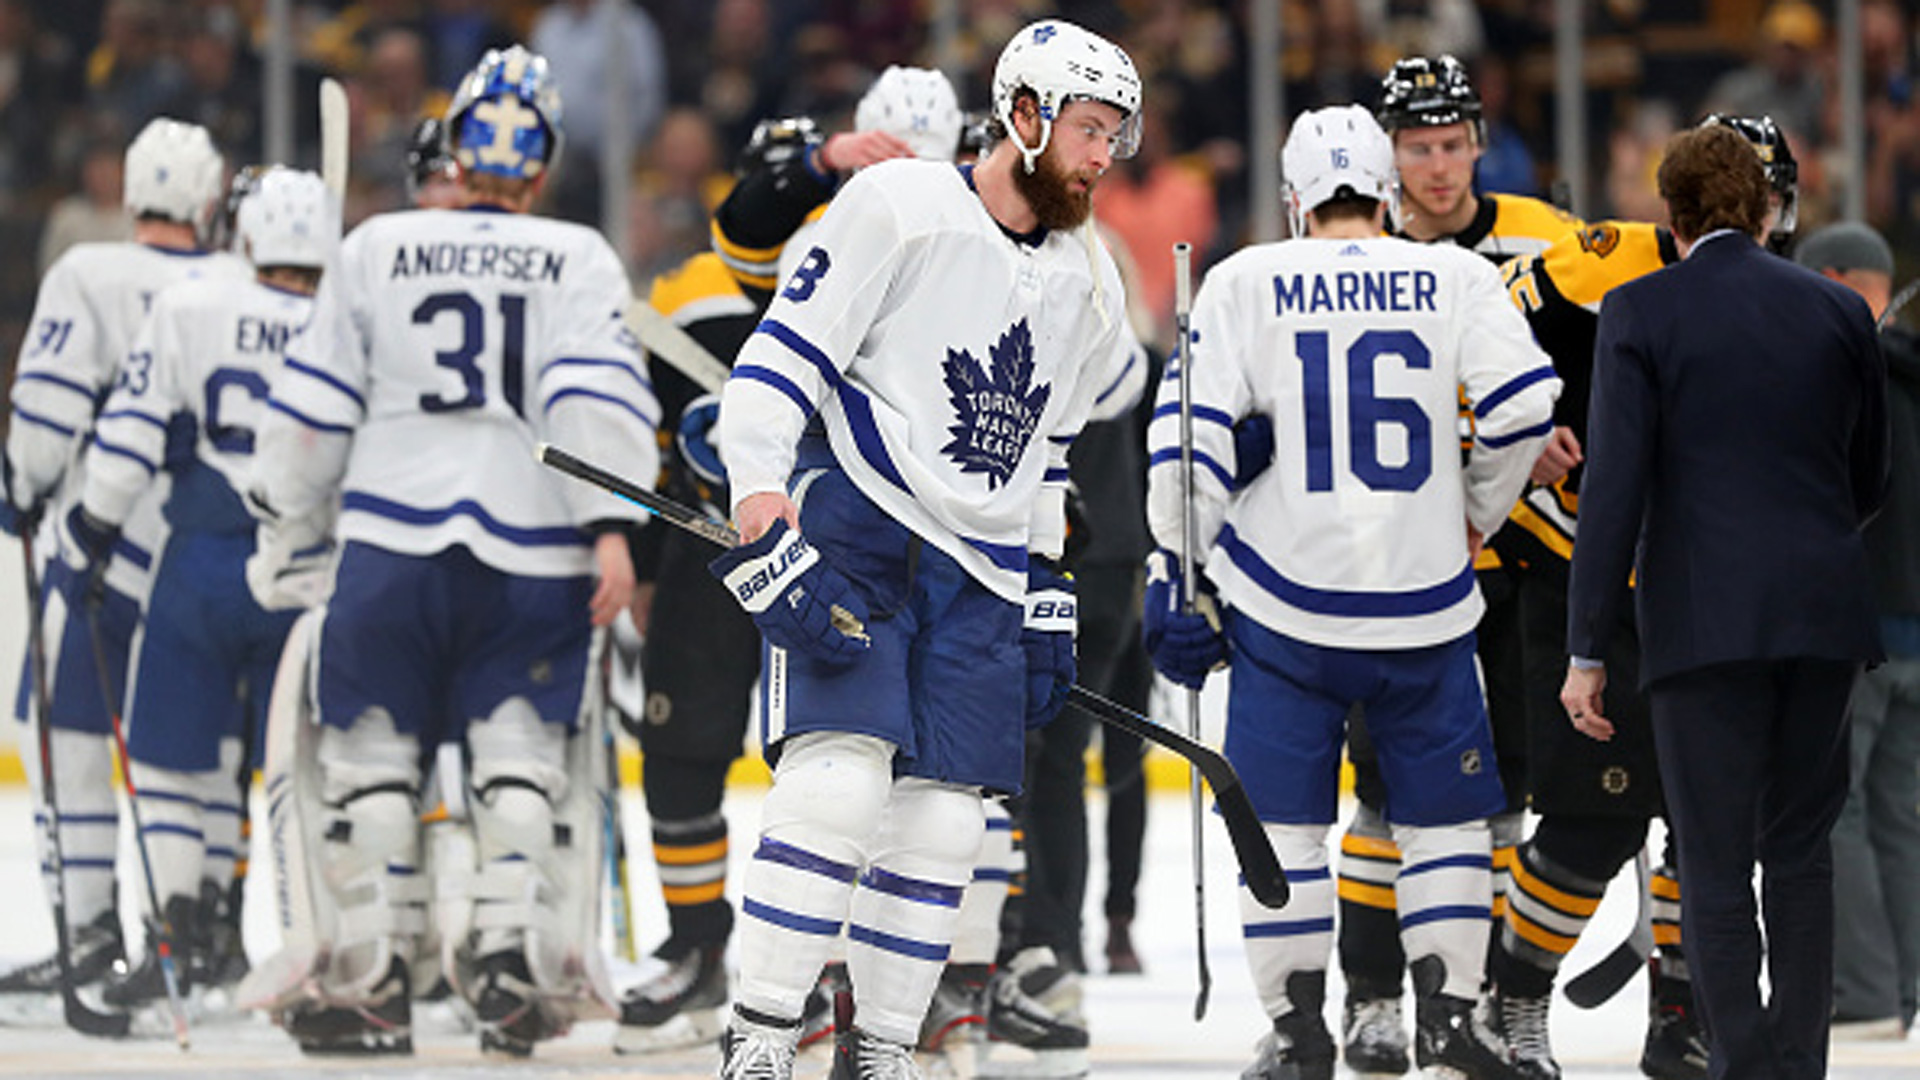 NHL: Maple Leafs 1, Bruins 4